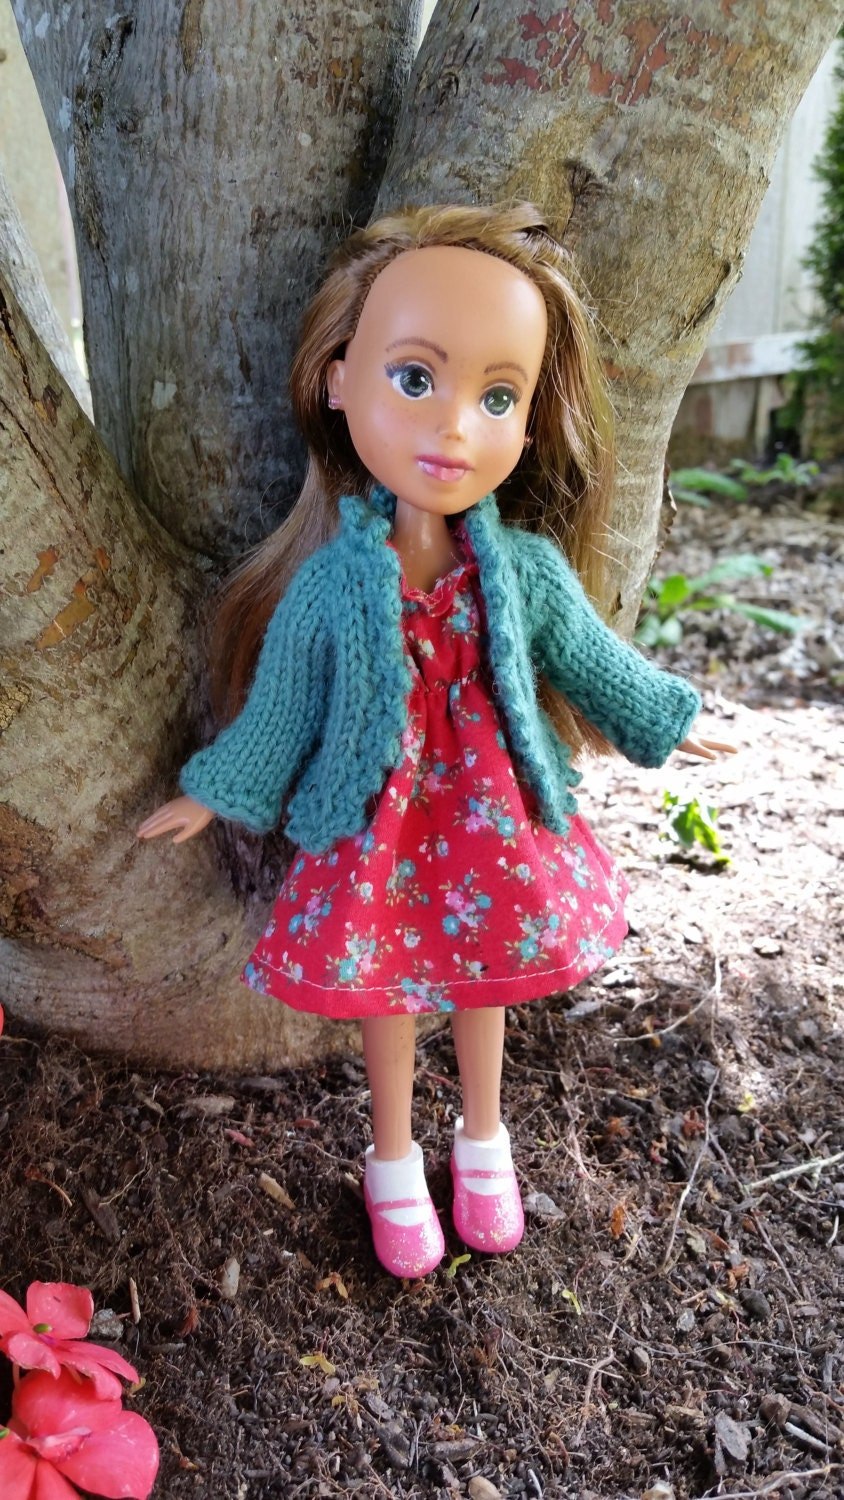 Knitting Pattern Doll Cardigan : Knitted Cardigan Sweater Pattern for Rescued Dolls pattern